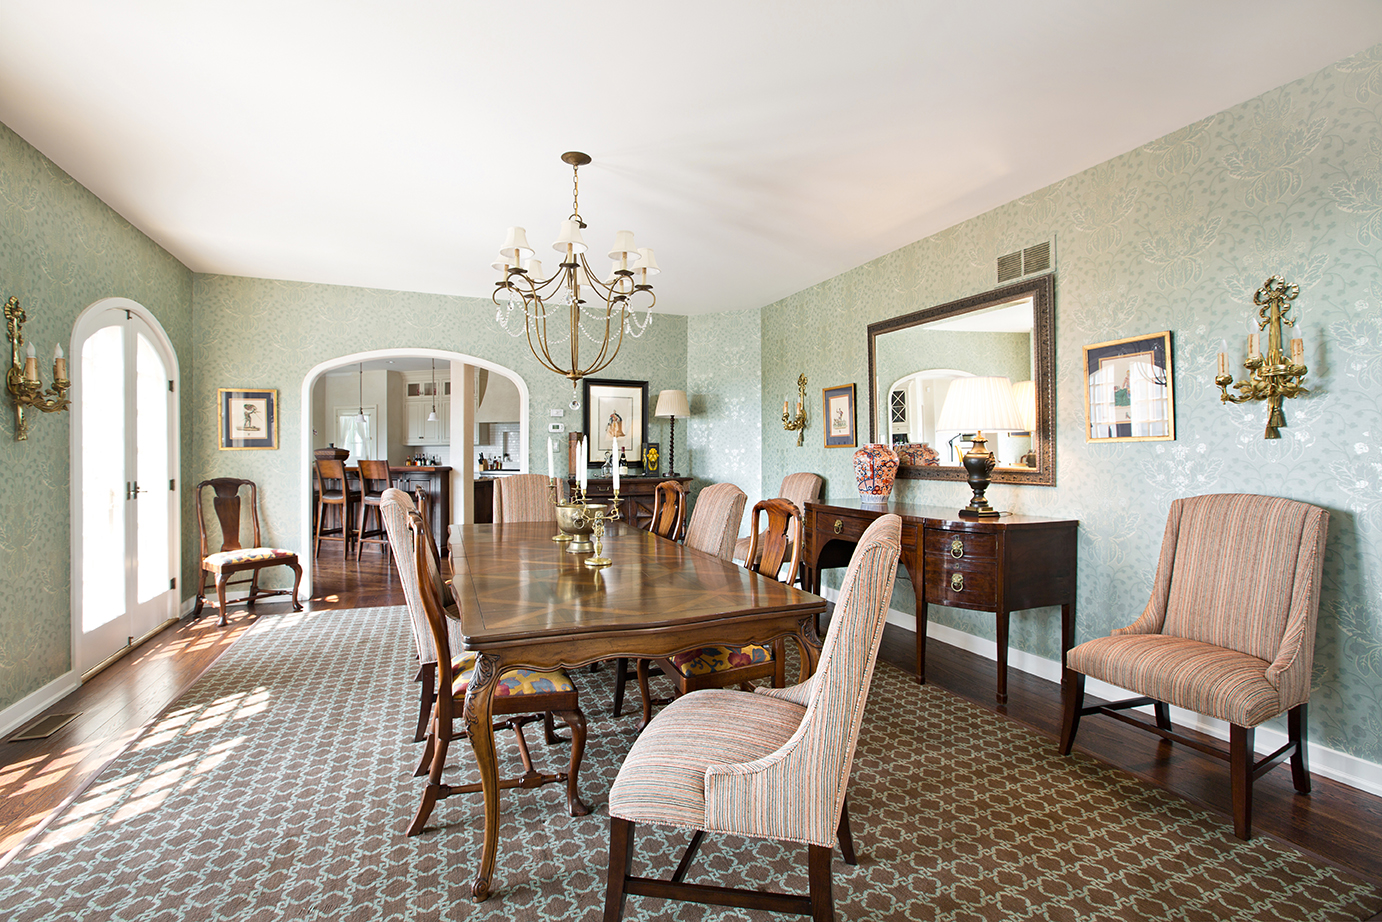 Another example of how a serious dining room doesn't have to take itself so seriously. We dig mixing and matching dining room chairs.